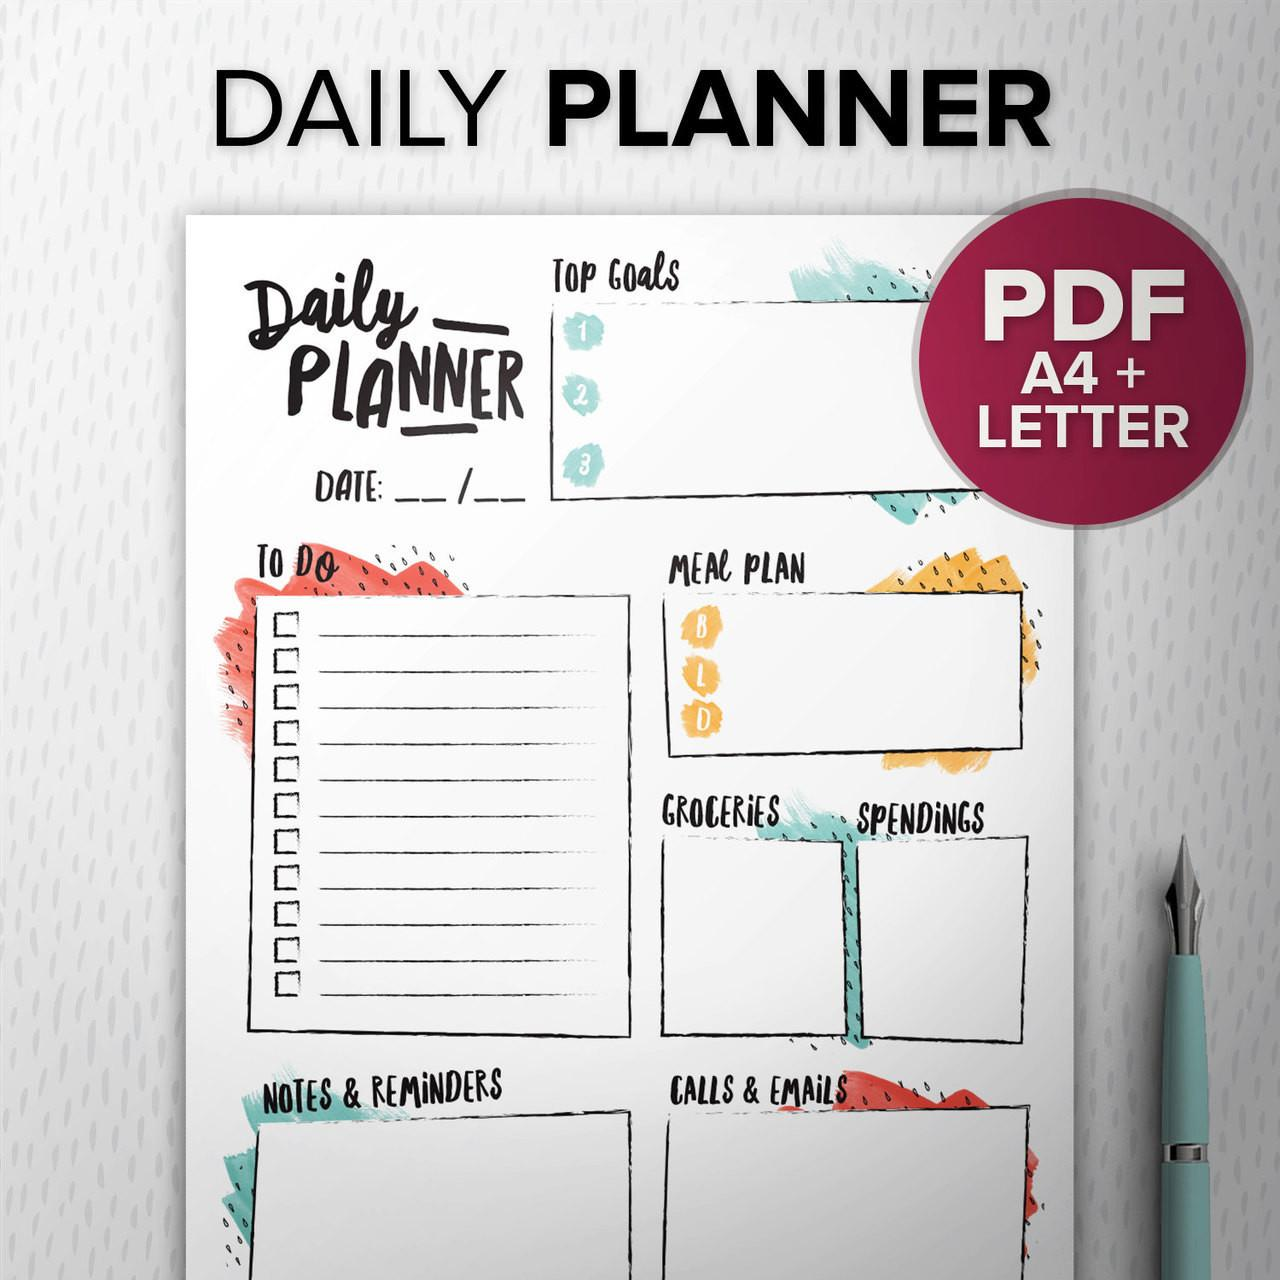 Diy Daily Planner Your Self